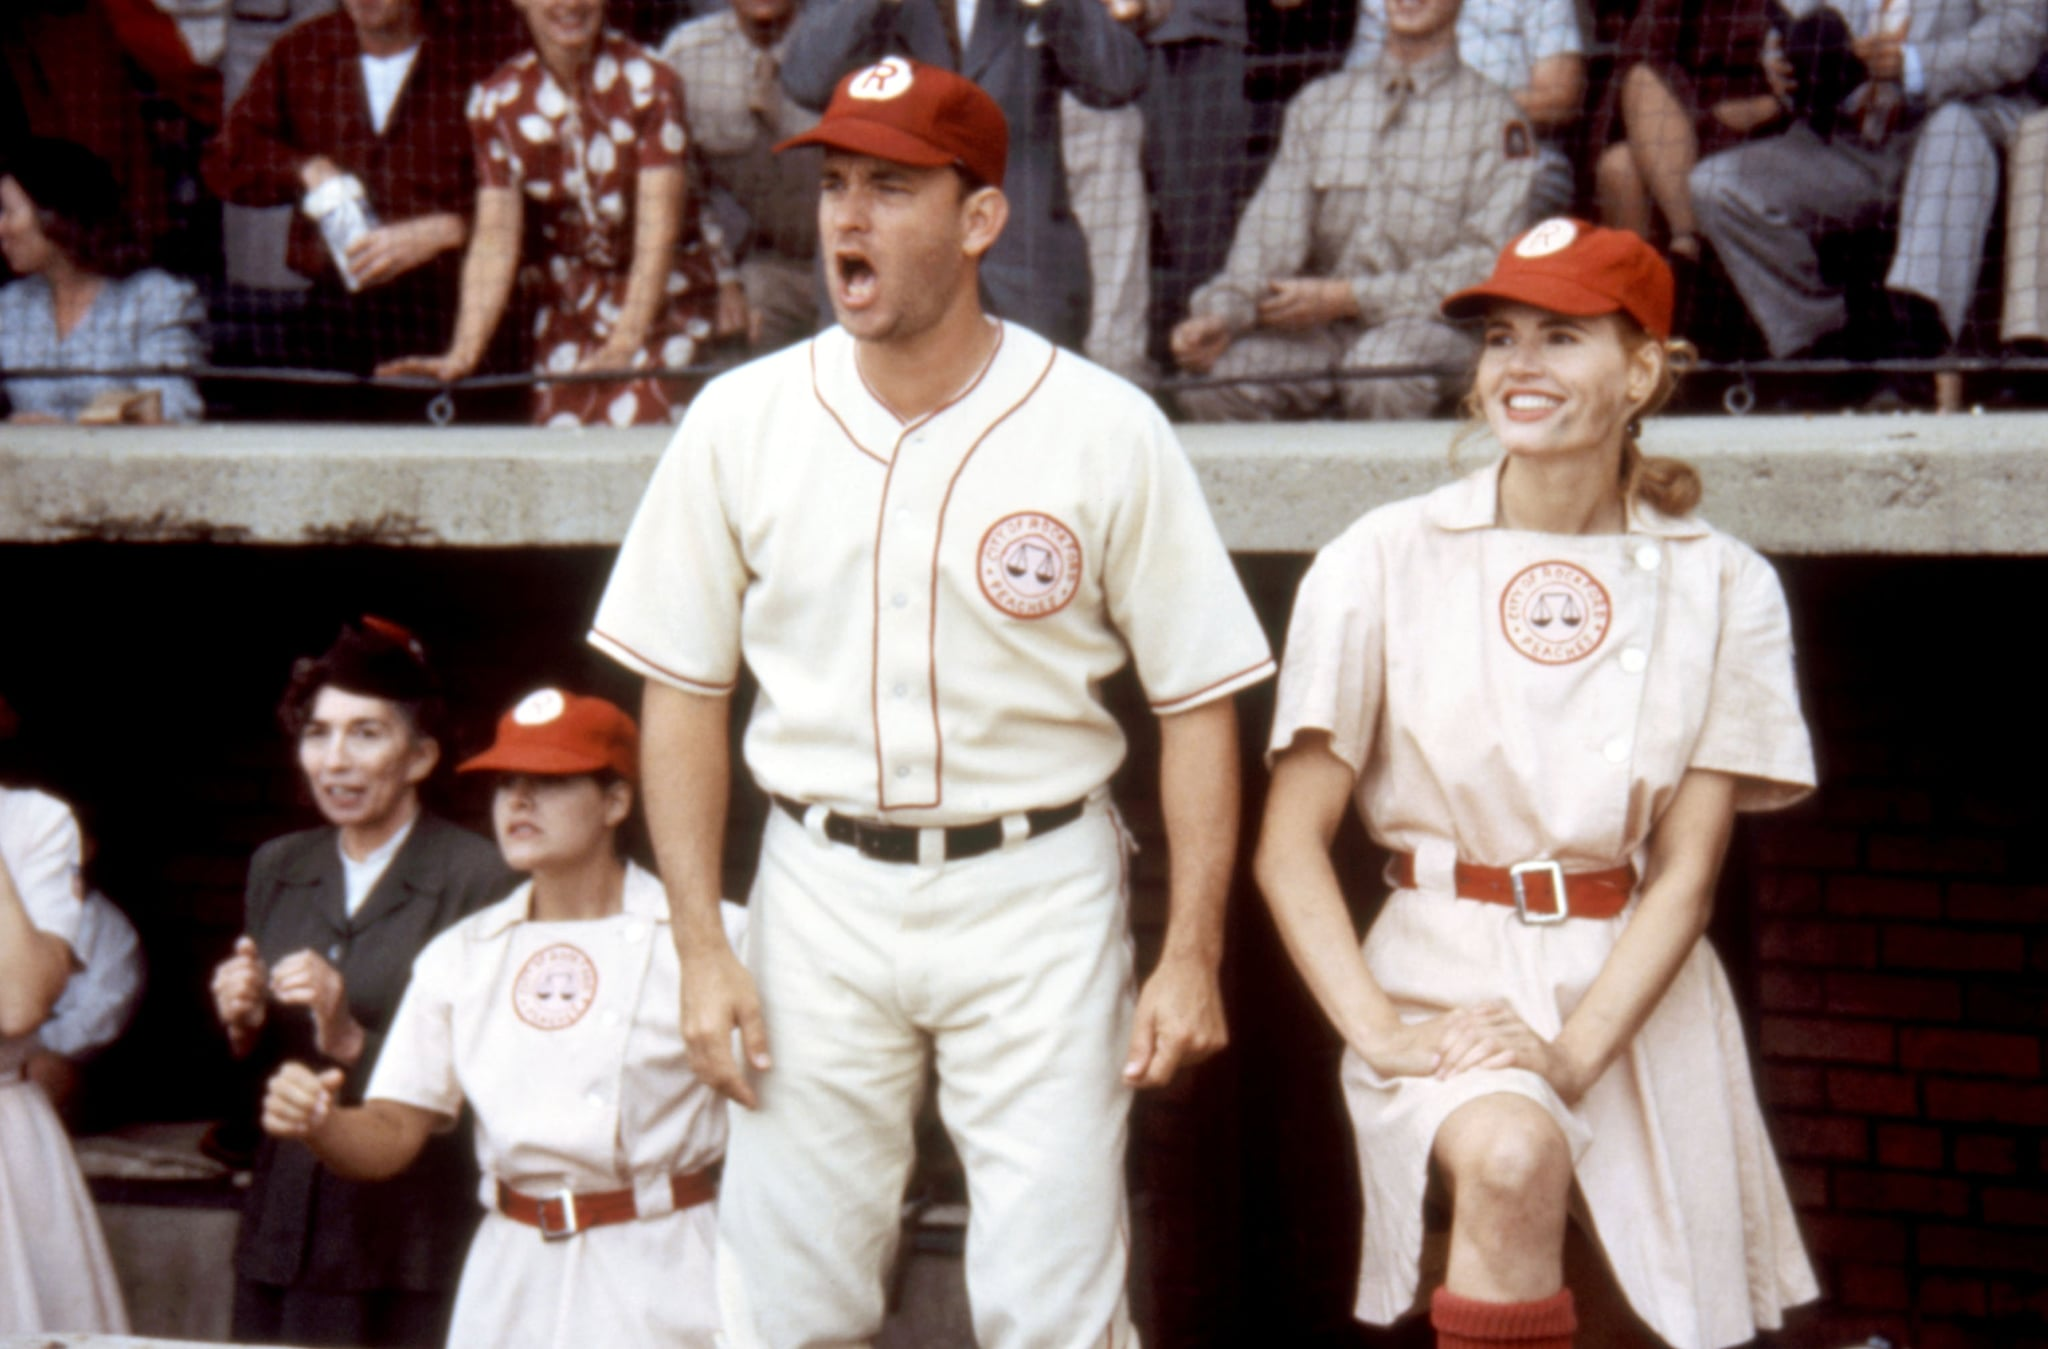 A LEAGUE OF THEIR OWN, foreground: Tom Hanks, Geena Davis, 1992.  Columbia Pictures/ Courtesy Everett Collection.